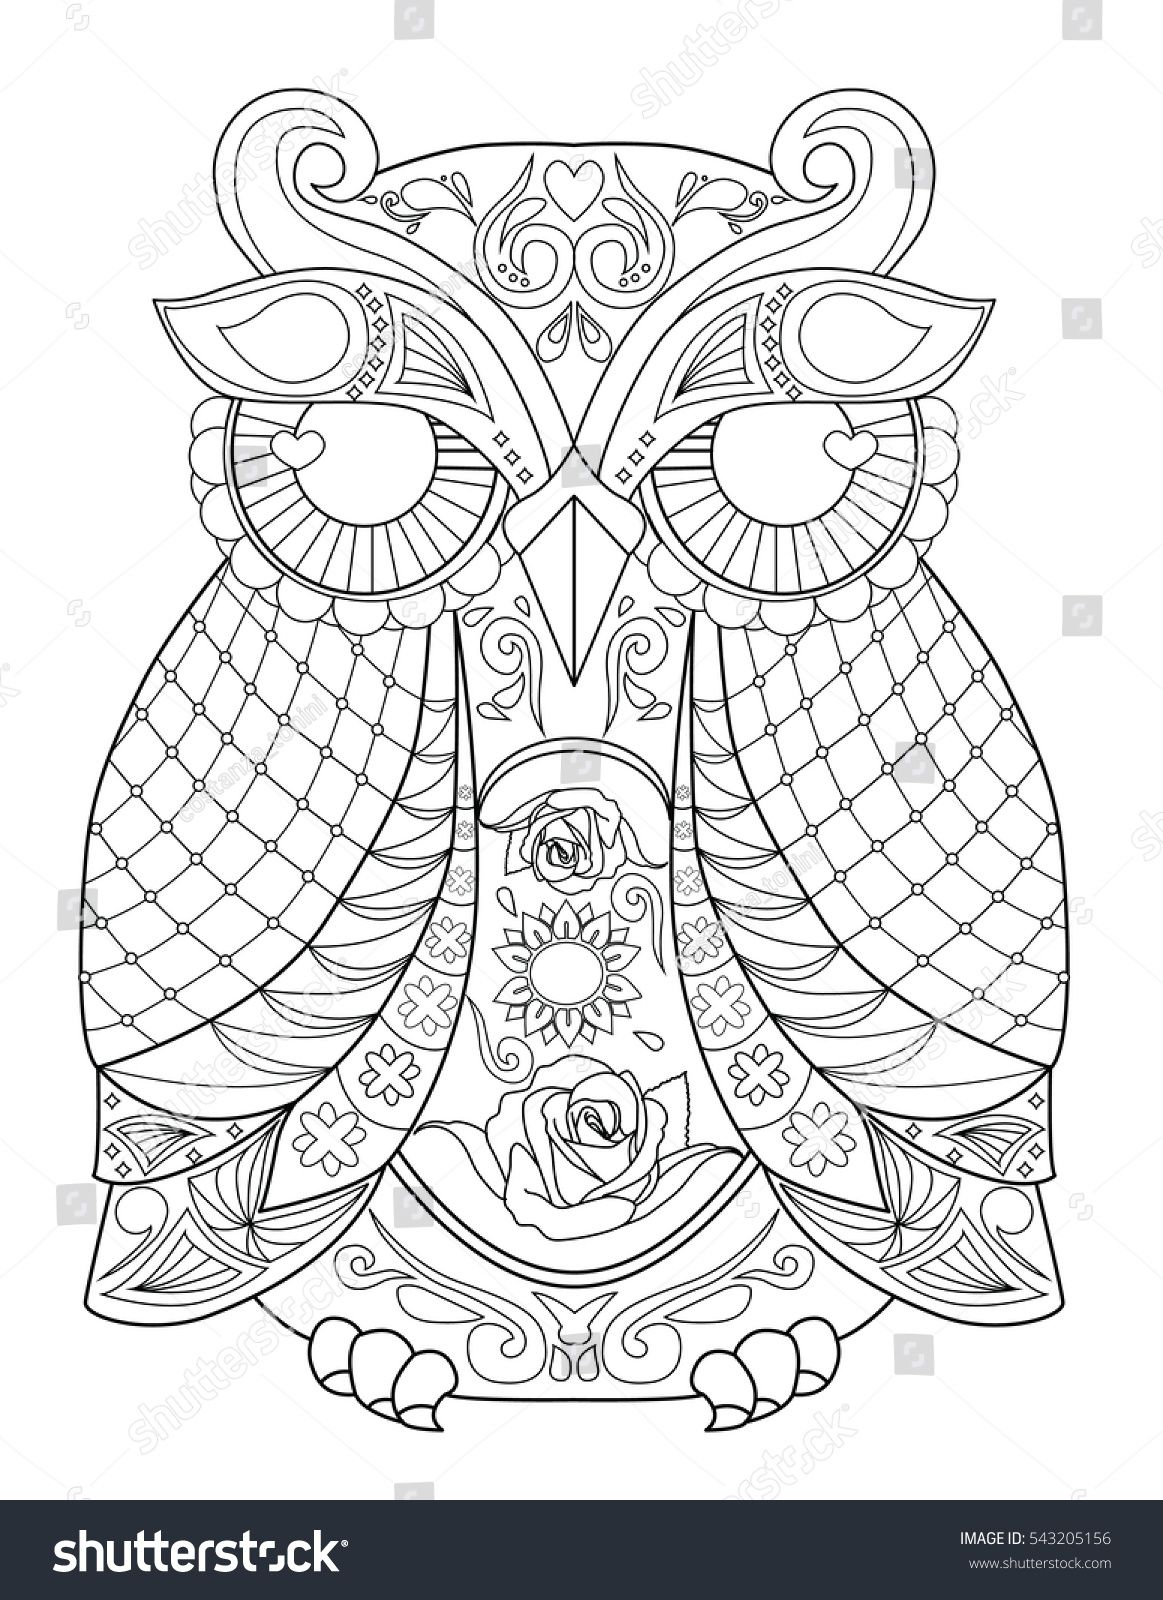 Owl Animal Mandala Coloring Page For Adult Coloring Books